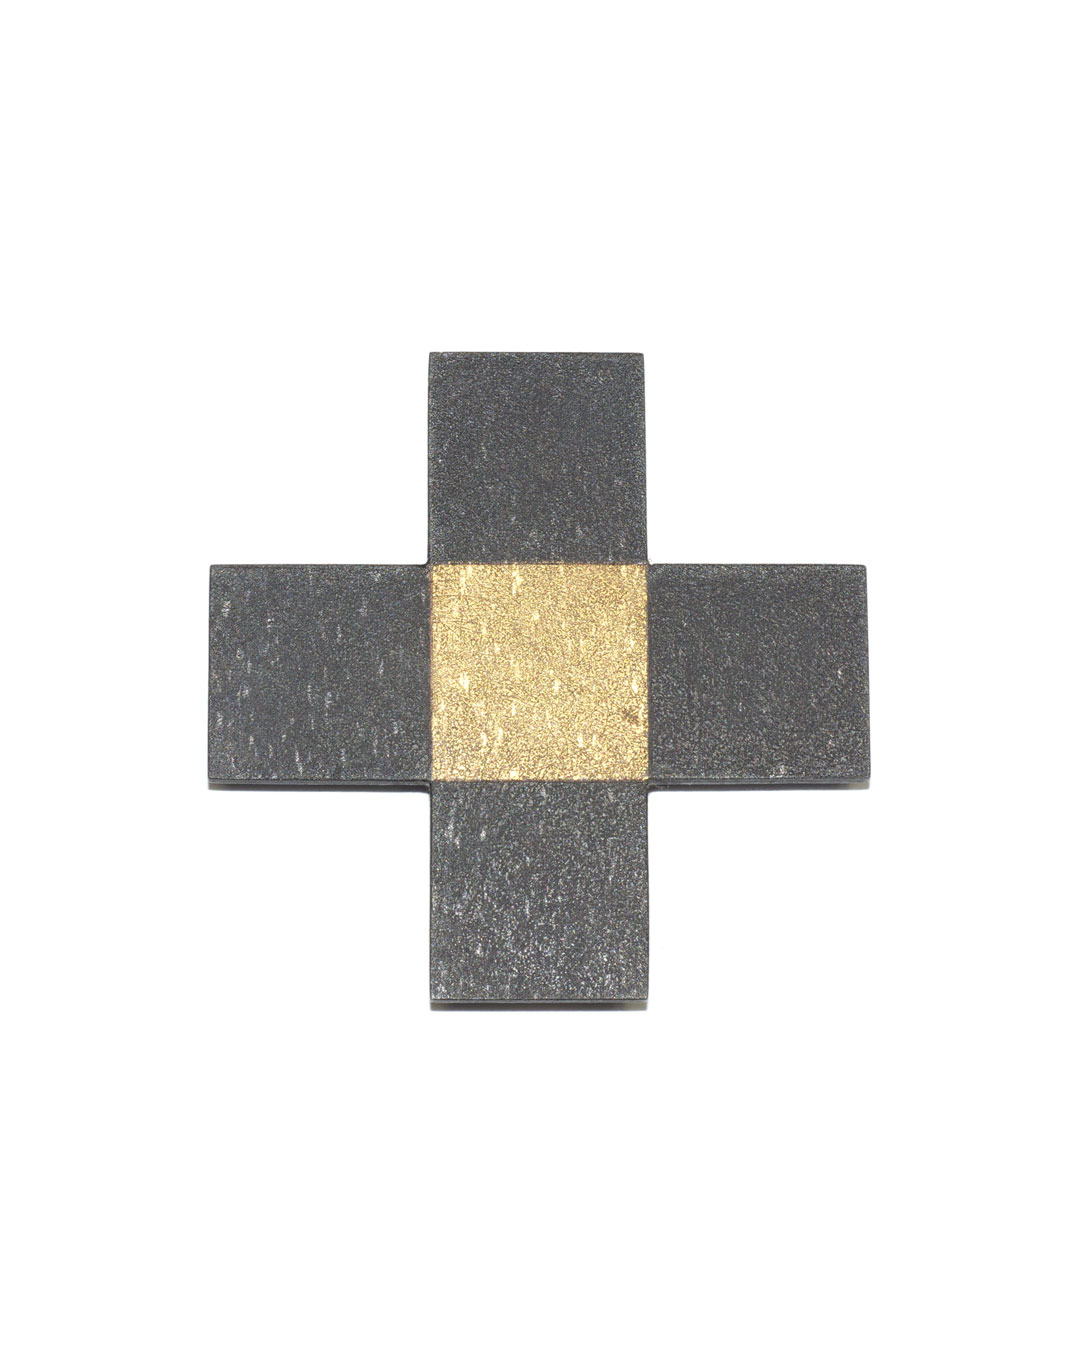 Tore Svensson, Cross , 2010, brooch; etched steel, partly gilt, 60 x 60 x 1.5 mm, €365